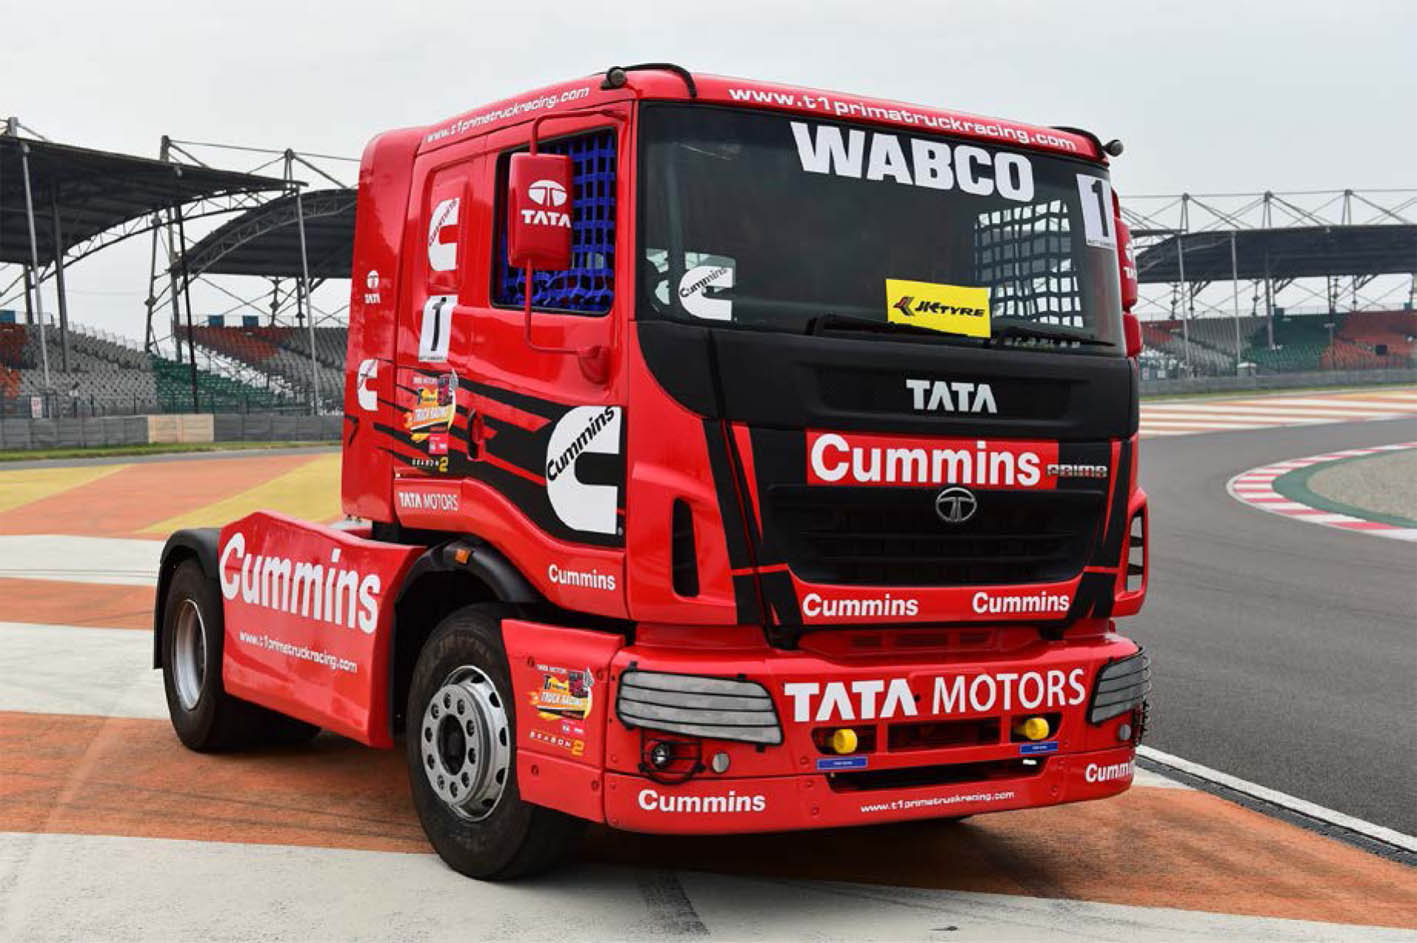 Tata motors will import power steering from Wabco for its…